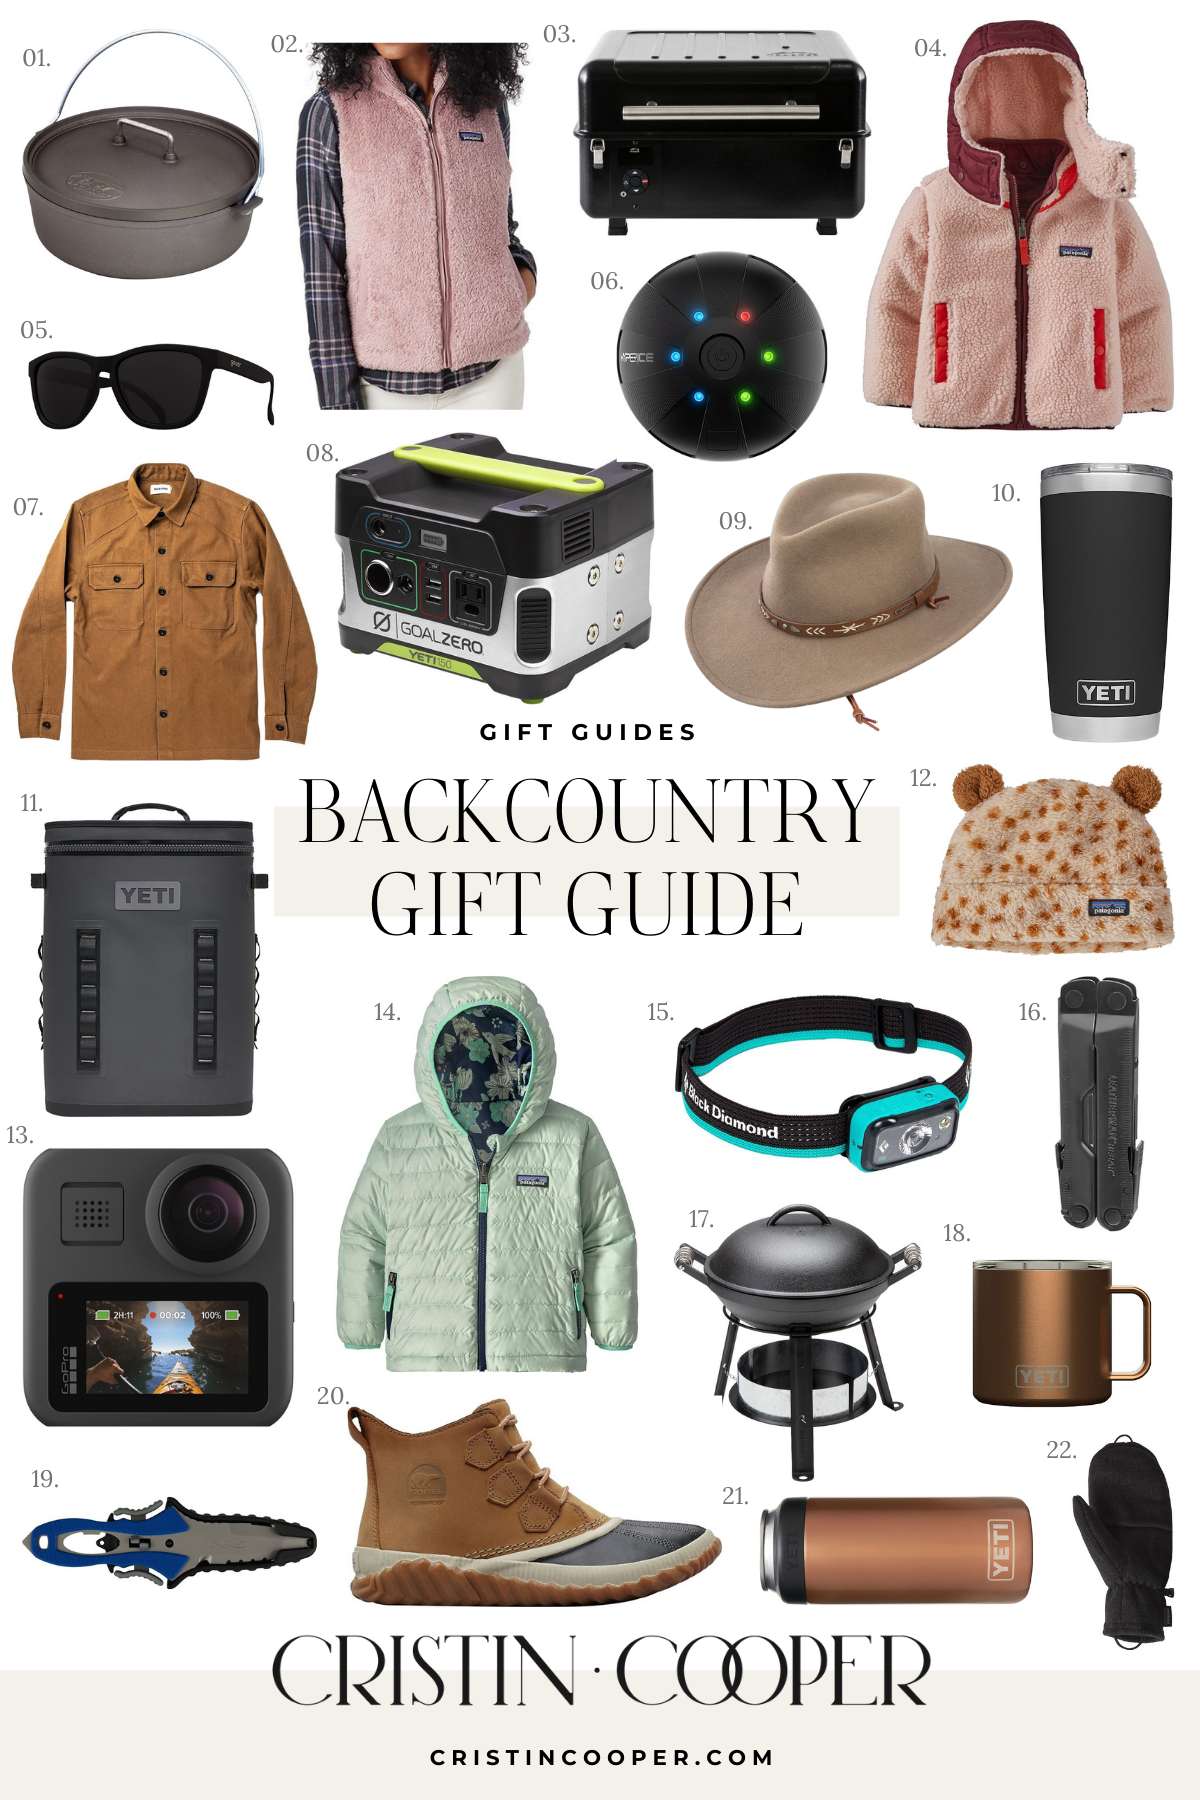 Gifts from Backcountry